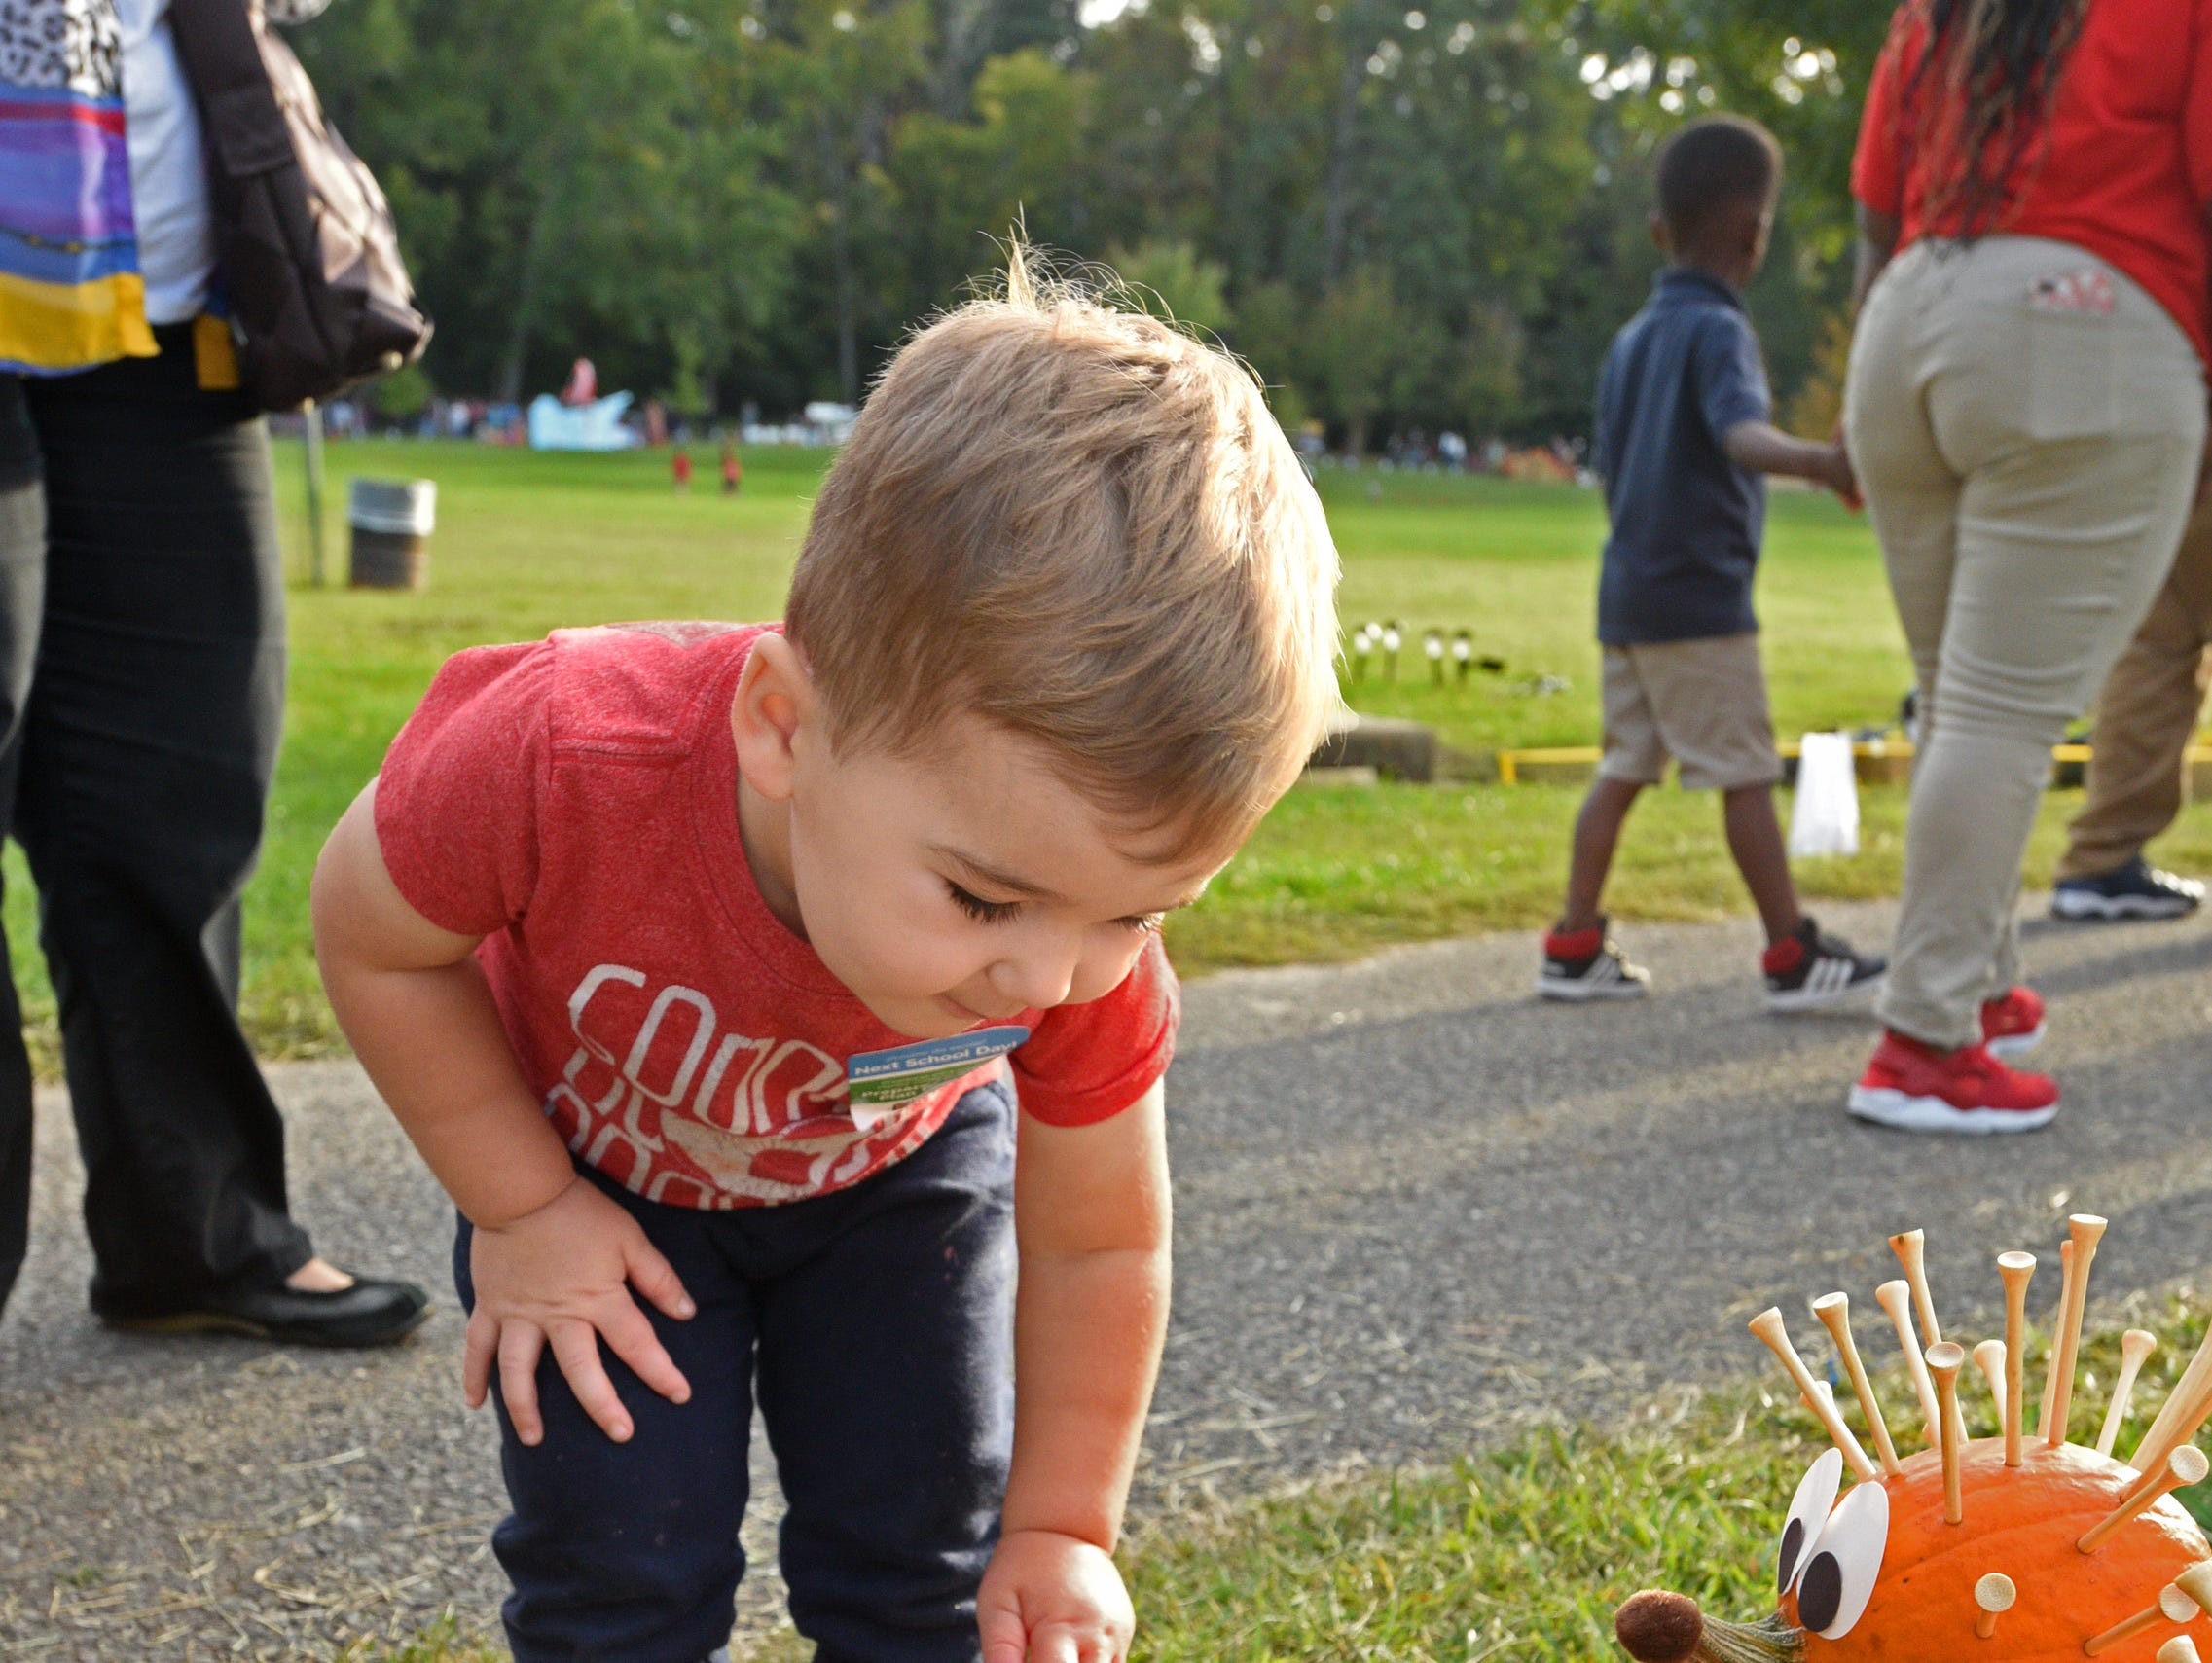 Carson Baker checks out a pumpkin at the 26th Annual Punpkin Shine on Line held Tuesday at Betty Virginia Park.